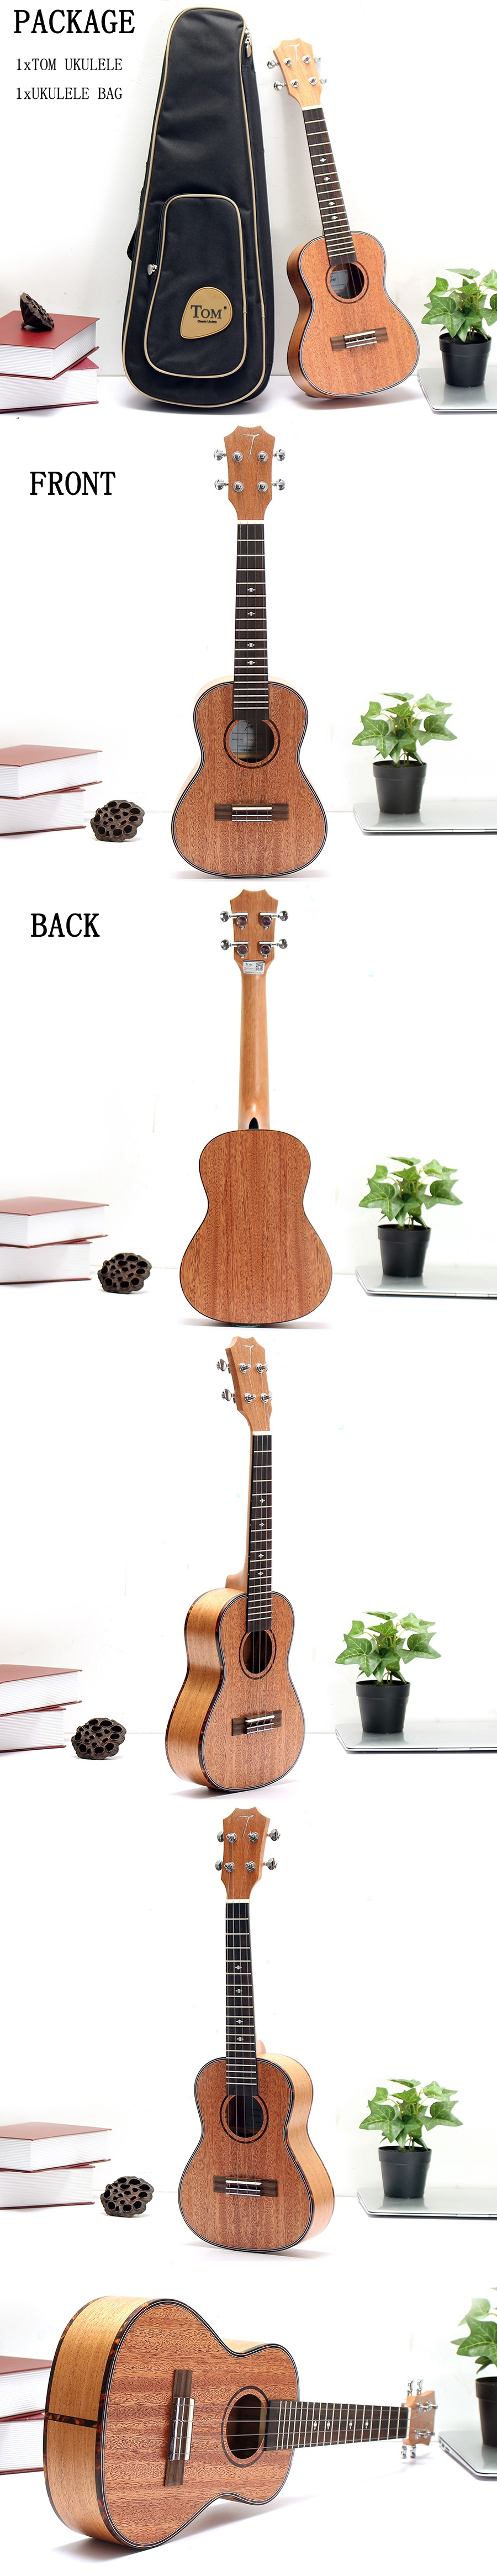 Tom TUC-200 23 Inch Ukulele Mahogany Rose Wood With Gig Bag